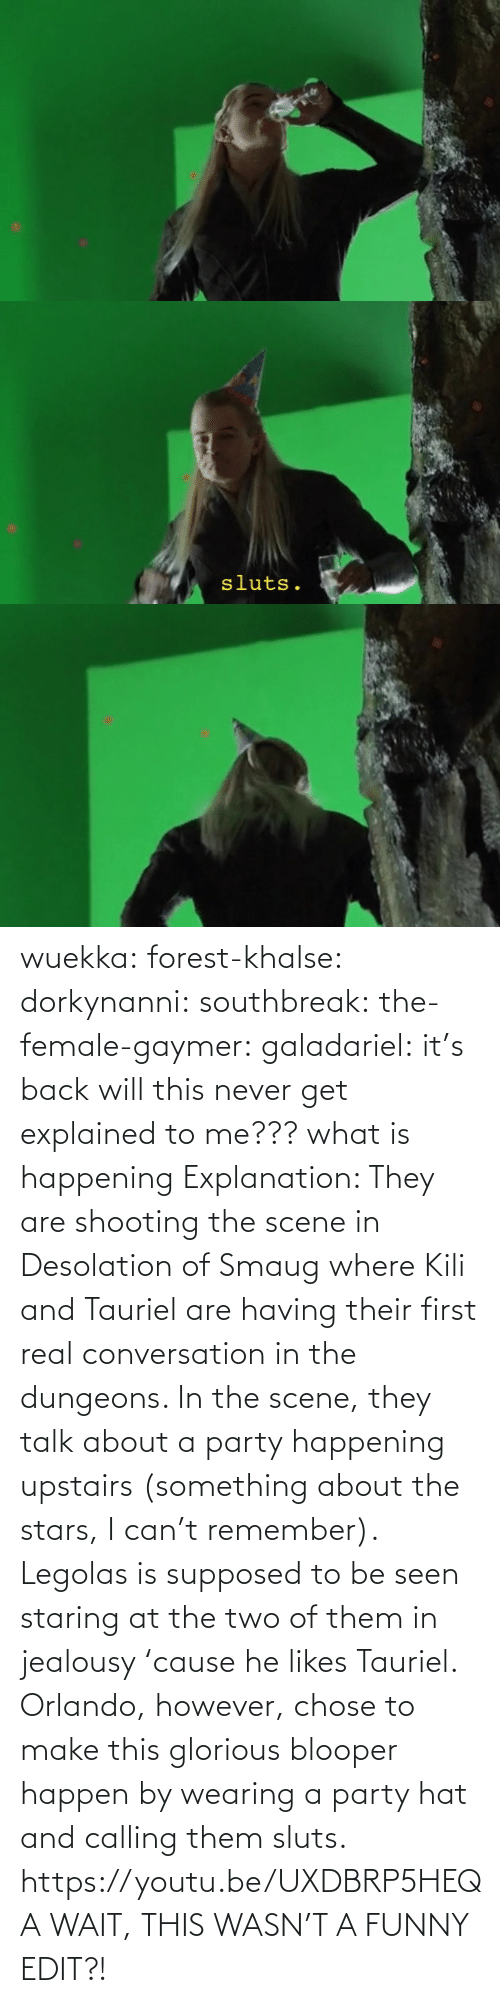 Youtu: wuekka: forest-khalse:   dorkynanni:  southbreak:   the-female-gaymer:   galadariel:  it's back   will this never get explained to me???    what is happening    Explanation:  They are shooting the scene in Desolation of Smaug where Kili and Tauriel are having their first real conversation in the dungeons.  In the scene, they talk about a party happening upstairs (something about the stars, I can't remember). Legolas is supposed to be seen staring at the two of them in jealousy 'cause he likes Tauriel.  Orlando, however, chose to make this glorious blooper happen by wearing a party hat and calling them sluts.    https://youtu.be/UXDBRP5HEQA    WAIT, THIS WASN'T A FUNNY EDIT?!